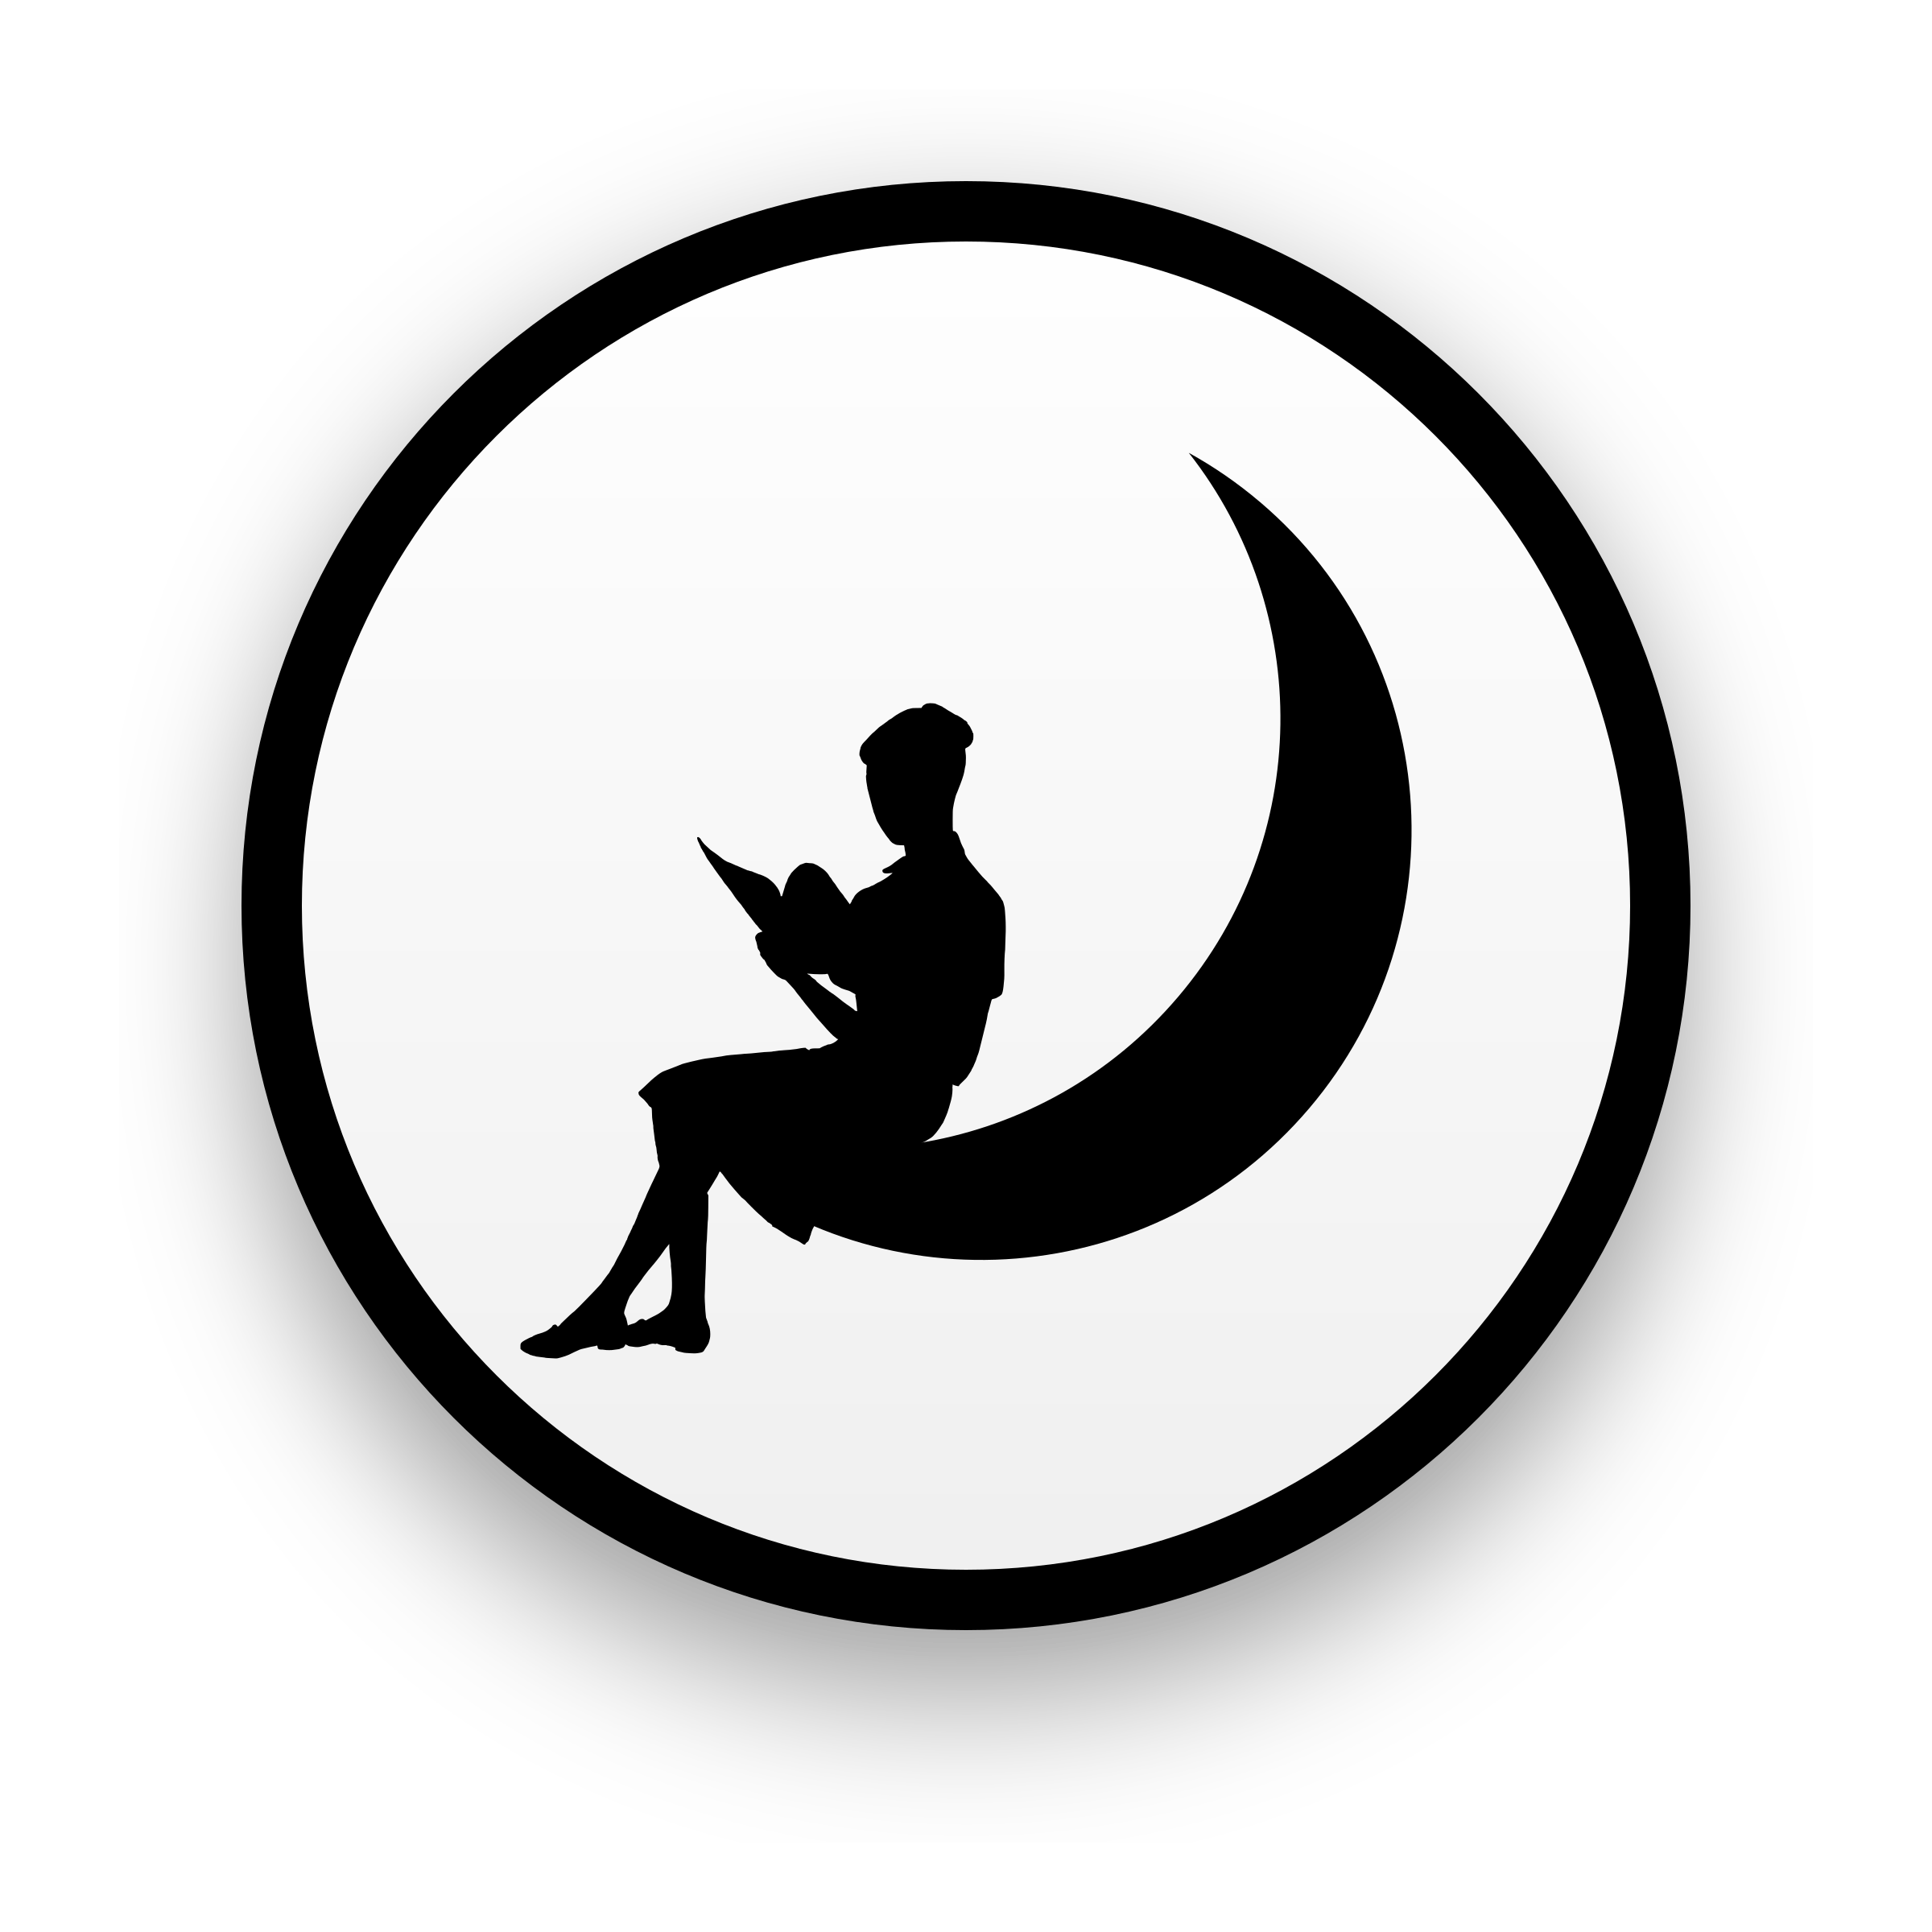 Halloween moon clipart black and white png royalty free Moon Silhouette Clipart at GetDrawings.com   Free for personal use ... png royalty free